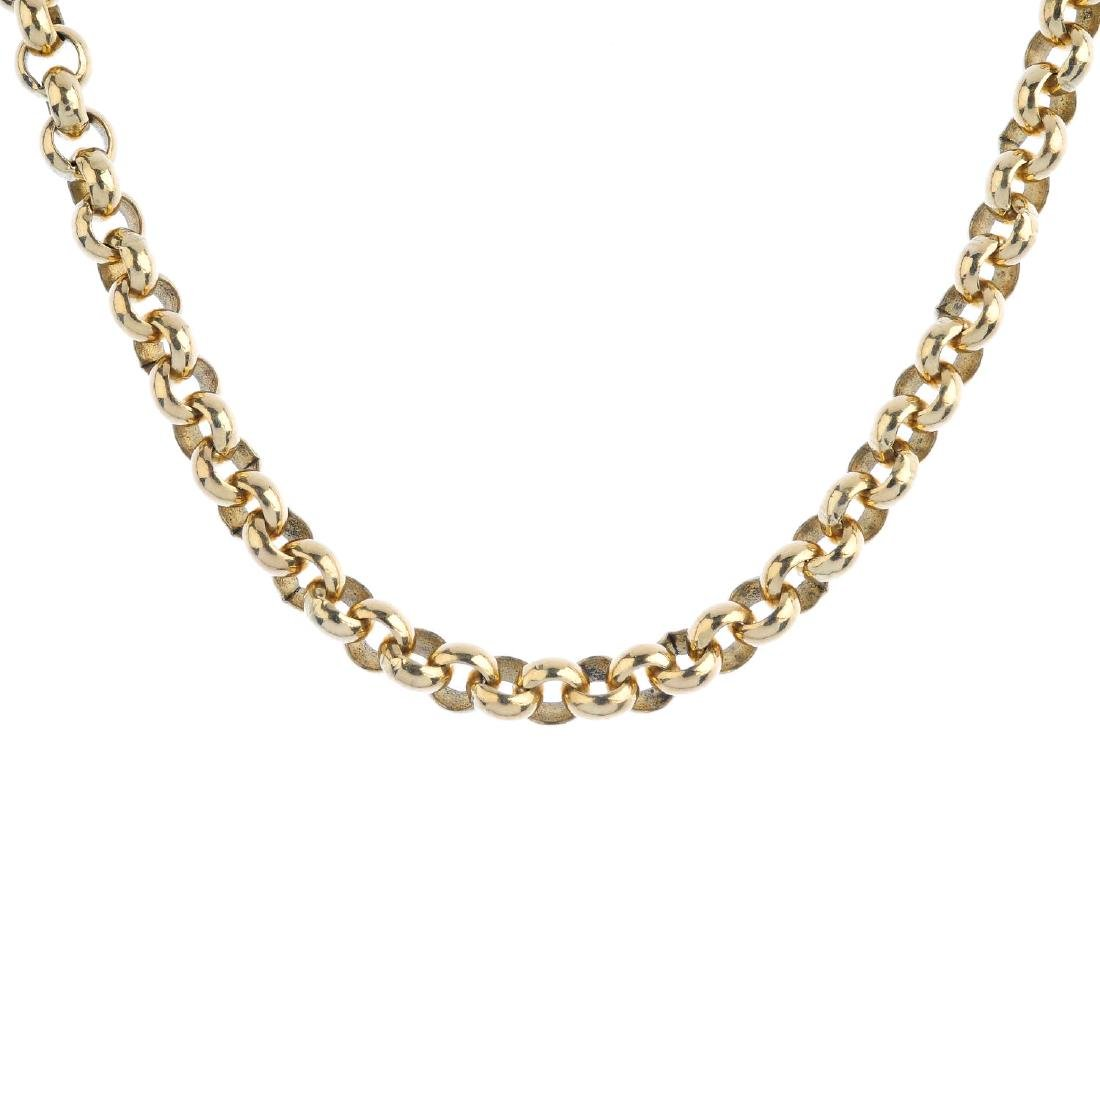 A 9ct gold necklace. Designed as a series of